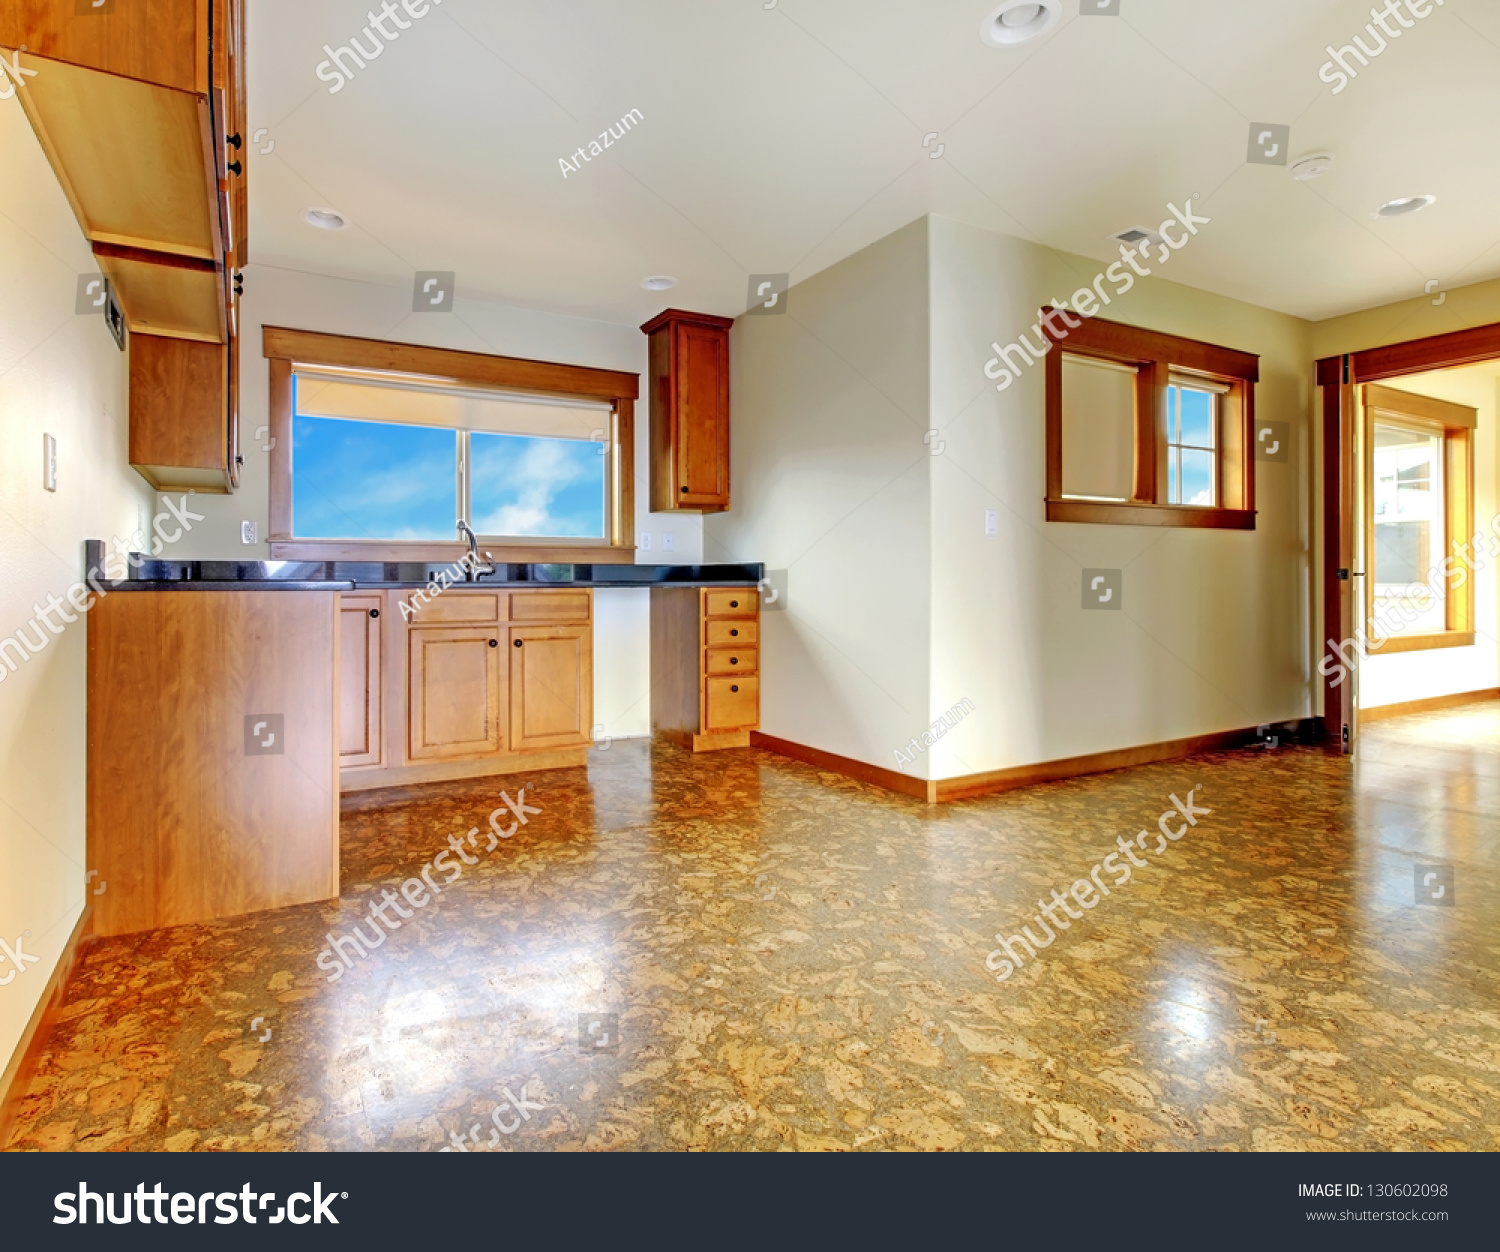 Small Kitchen Apartment Above Garage New Stock Photo 130602098 Shutterstock